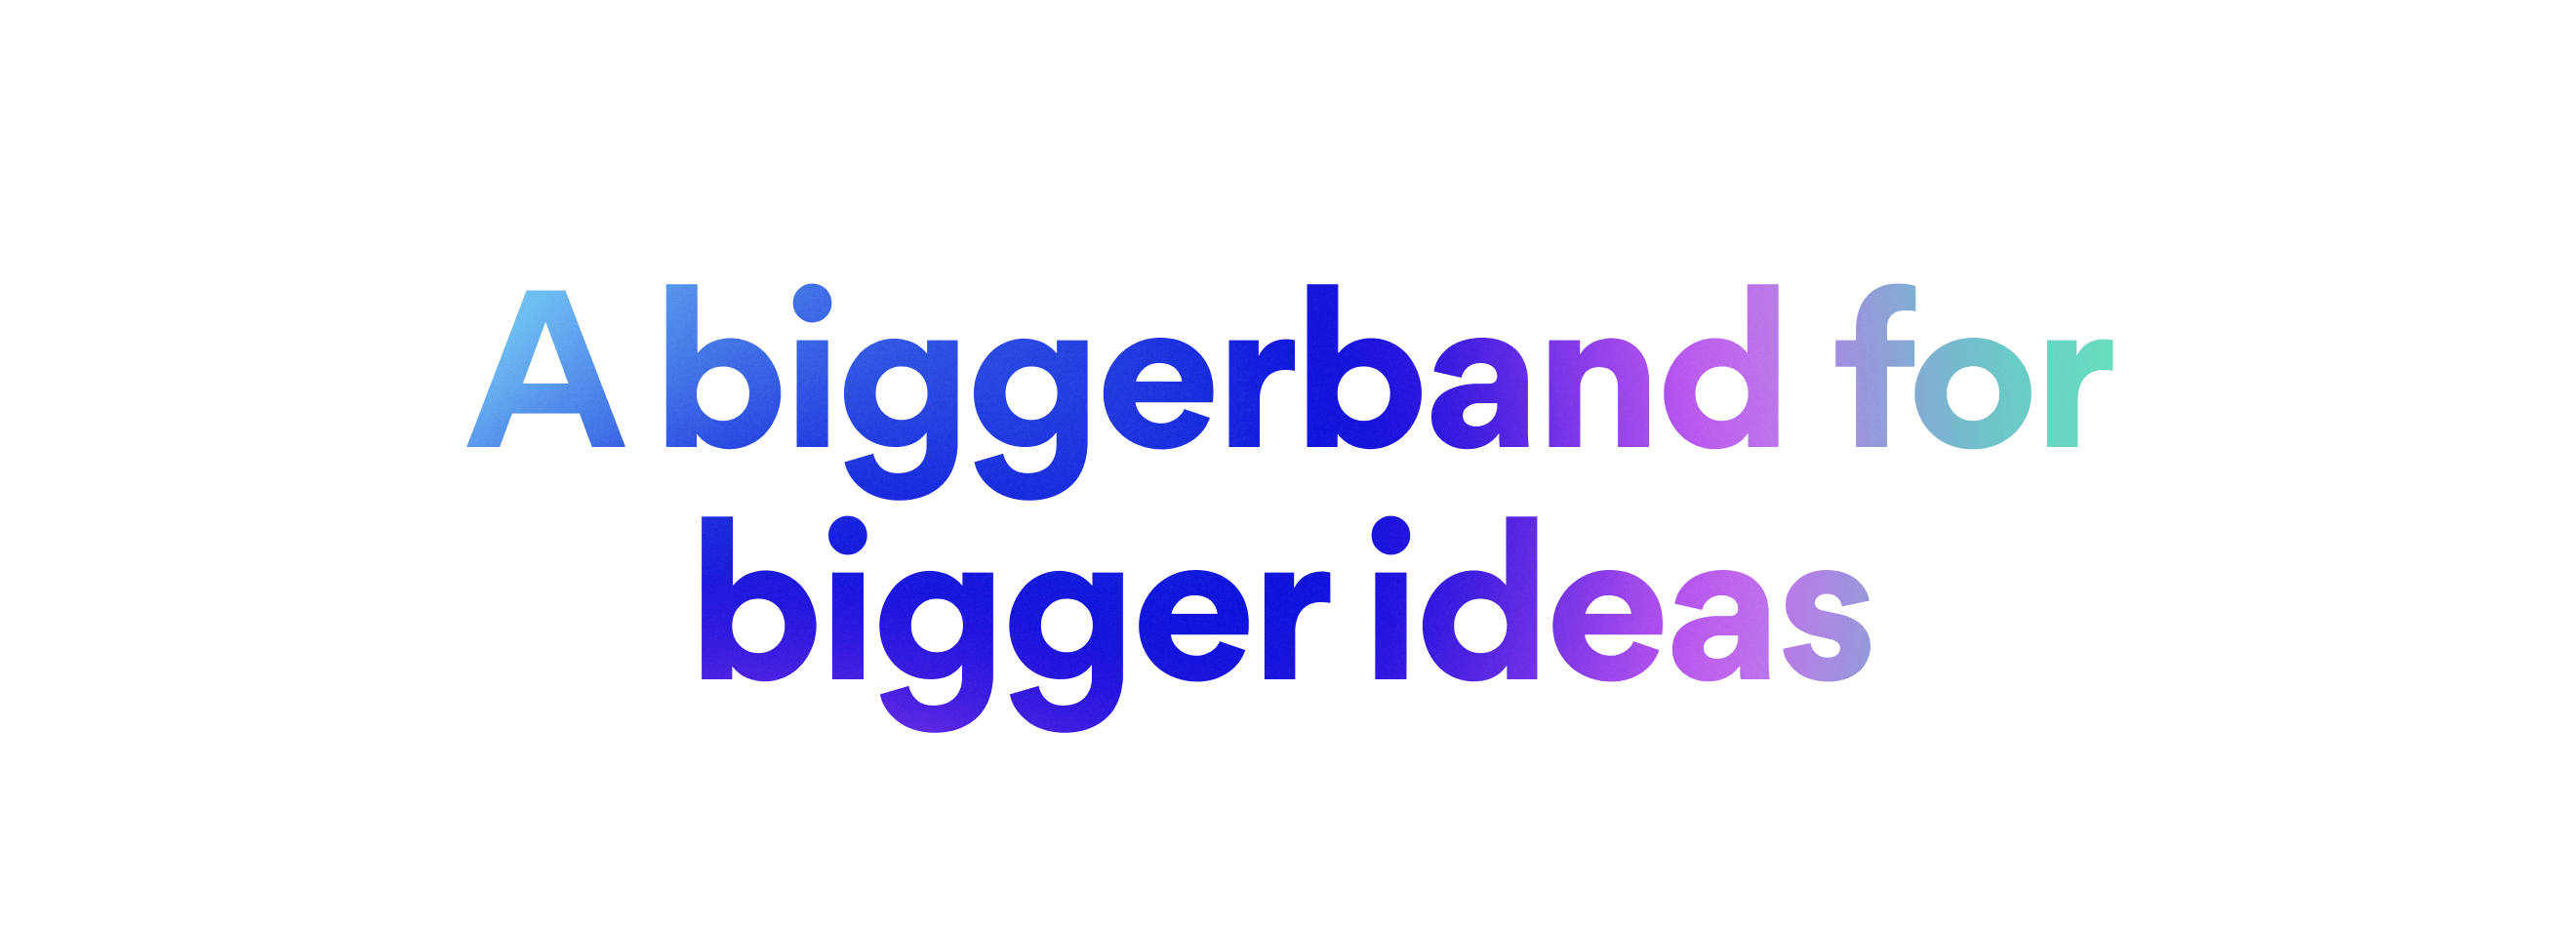 A biggerband for bigger ideas